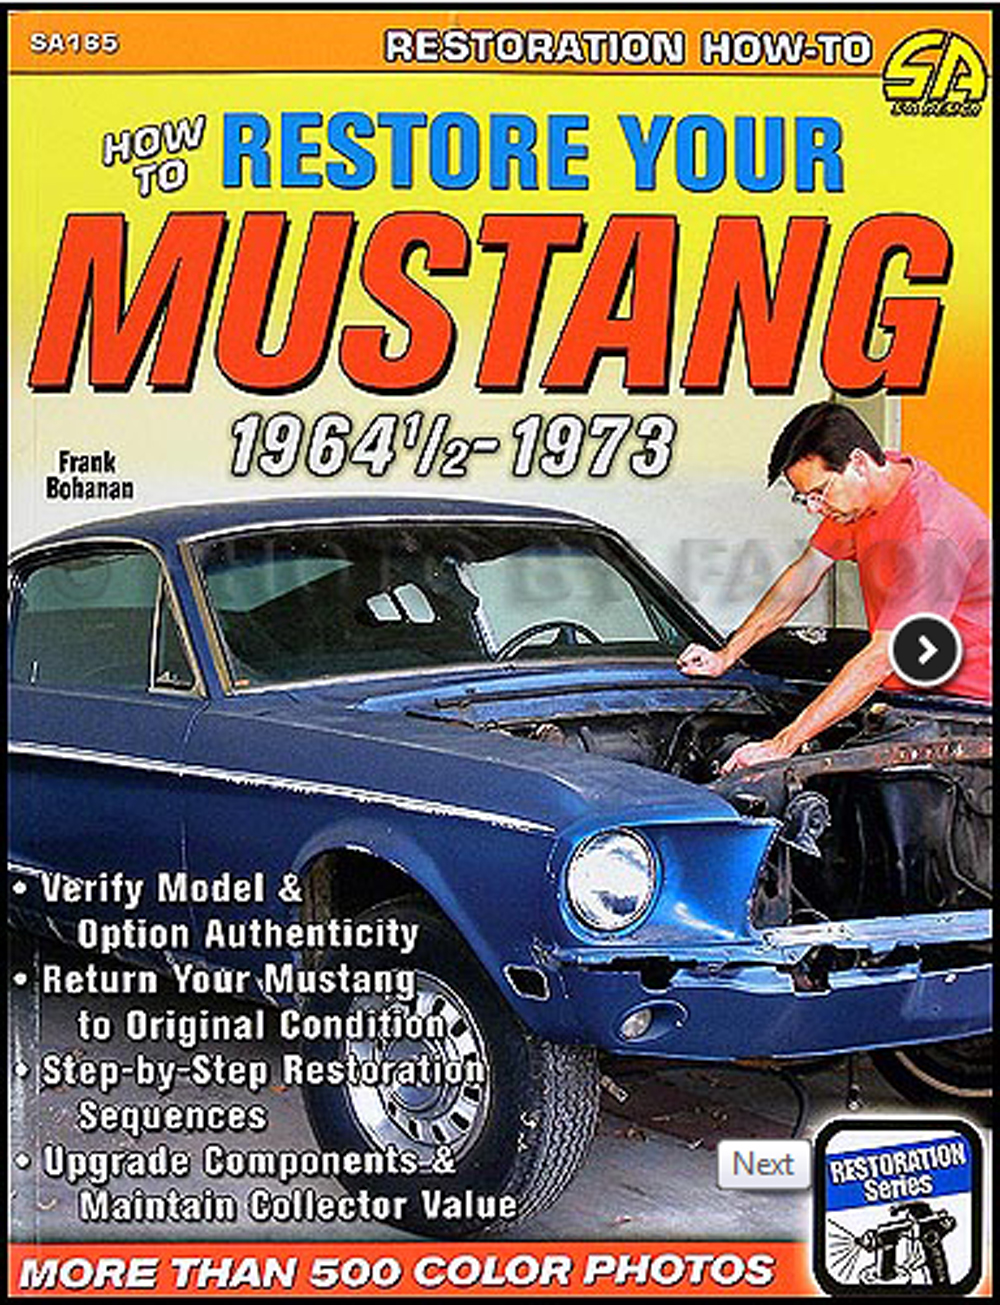 How to Restore your Mustang 1964-1973